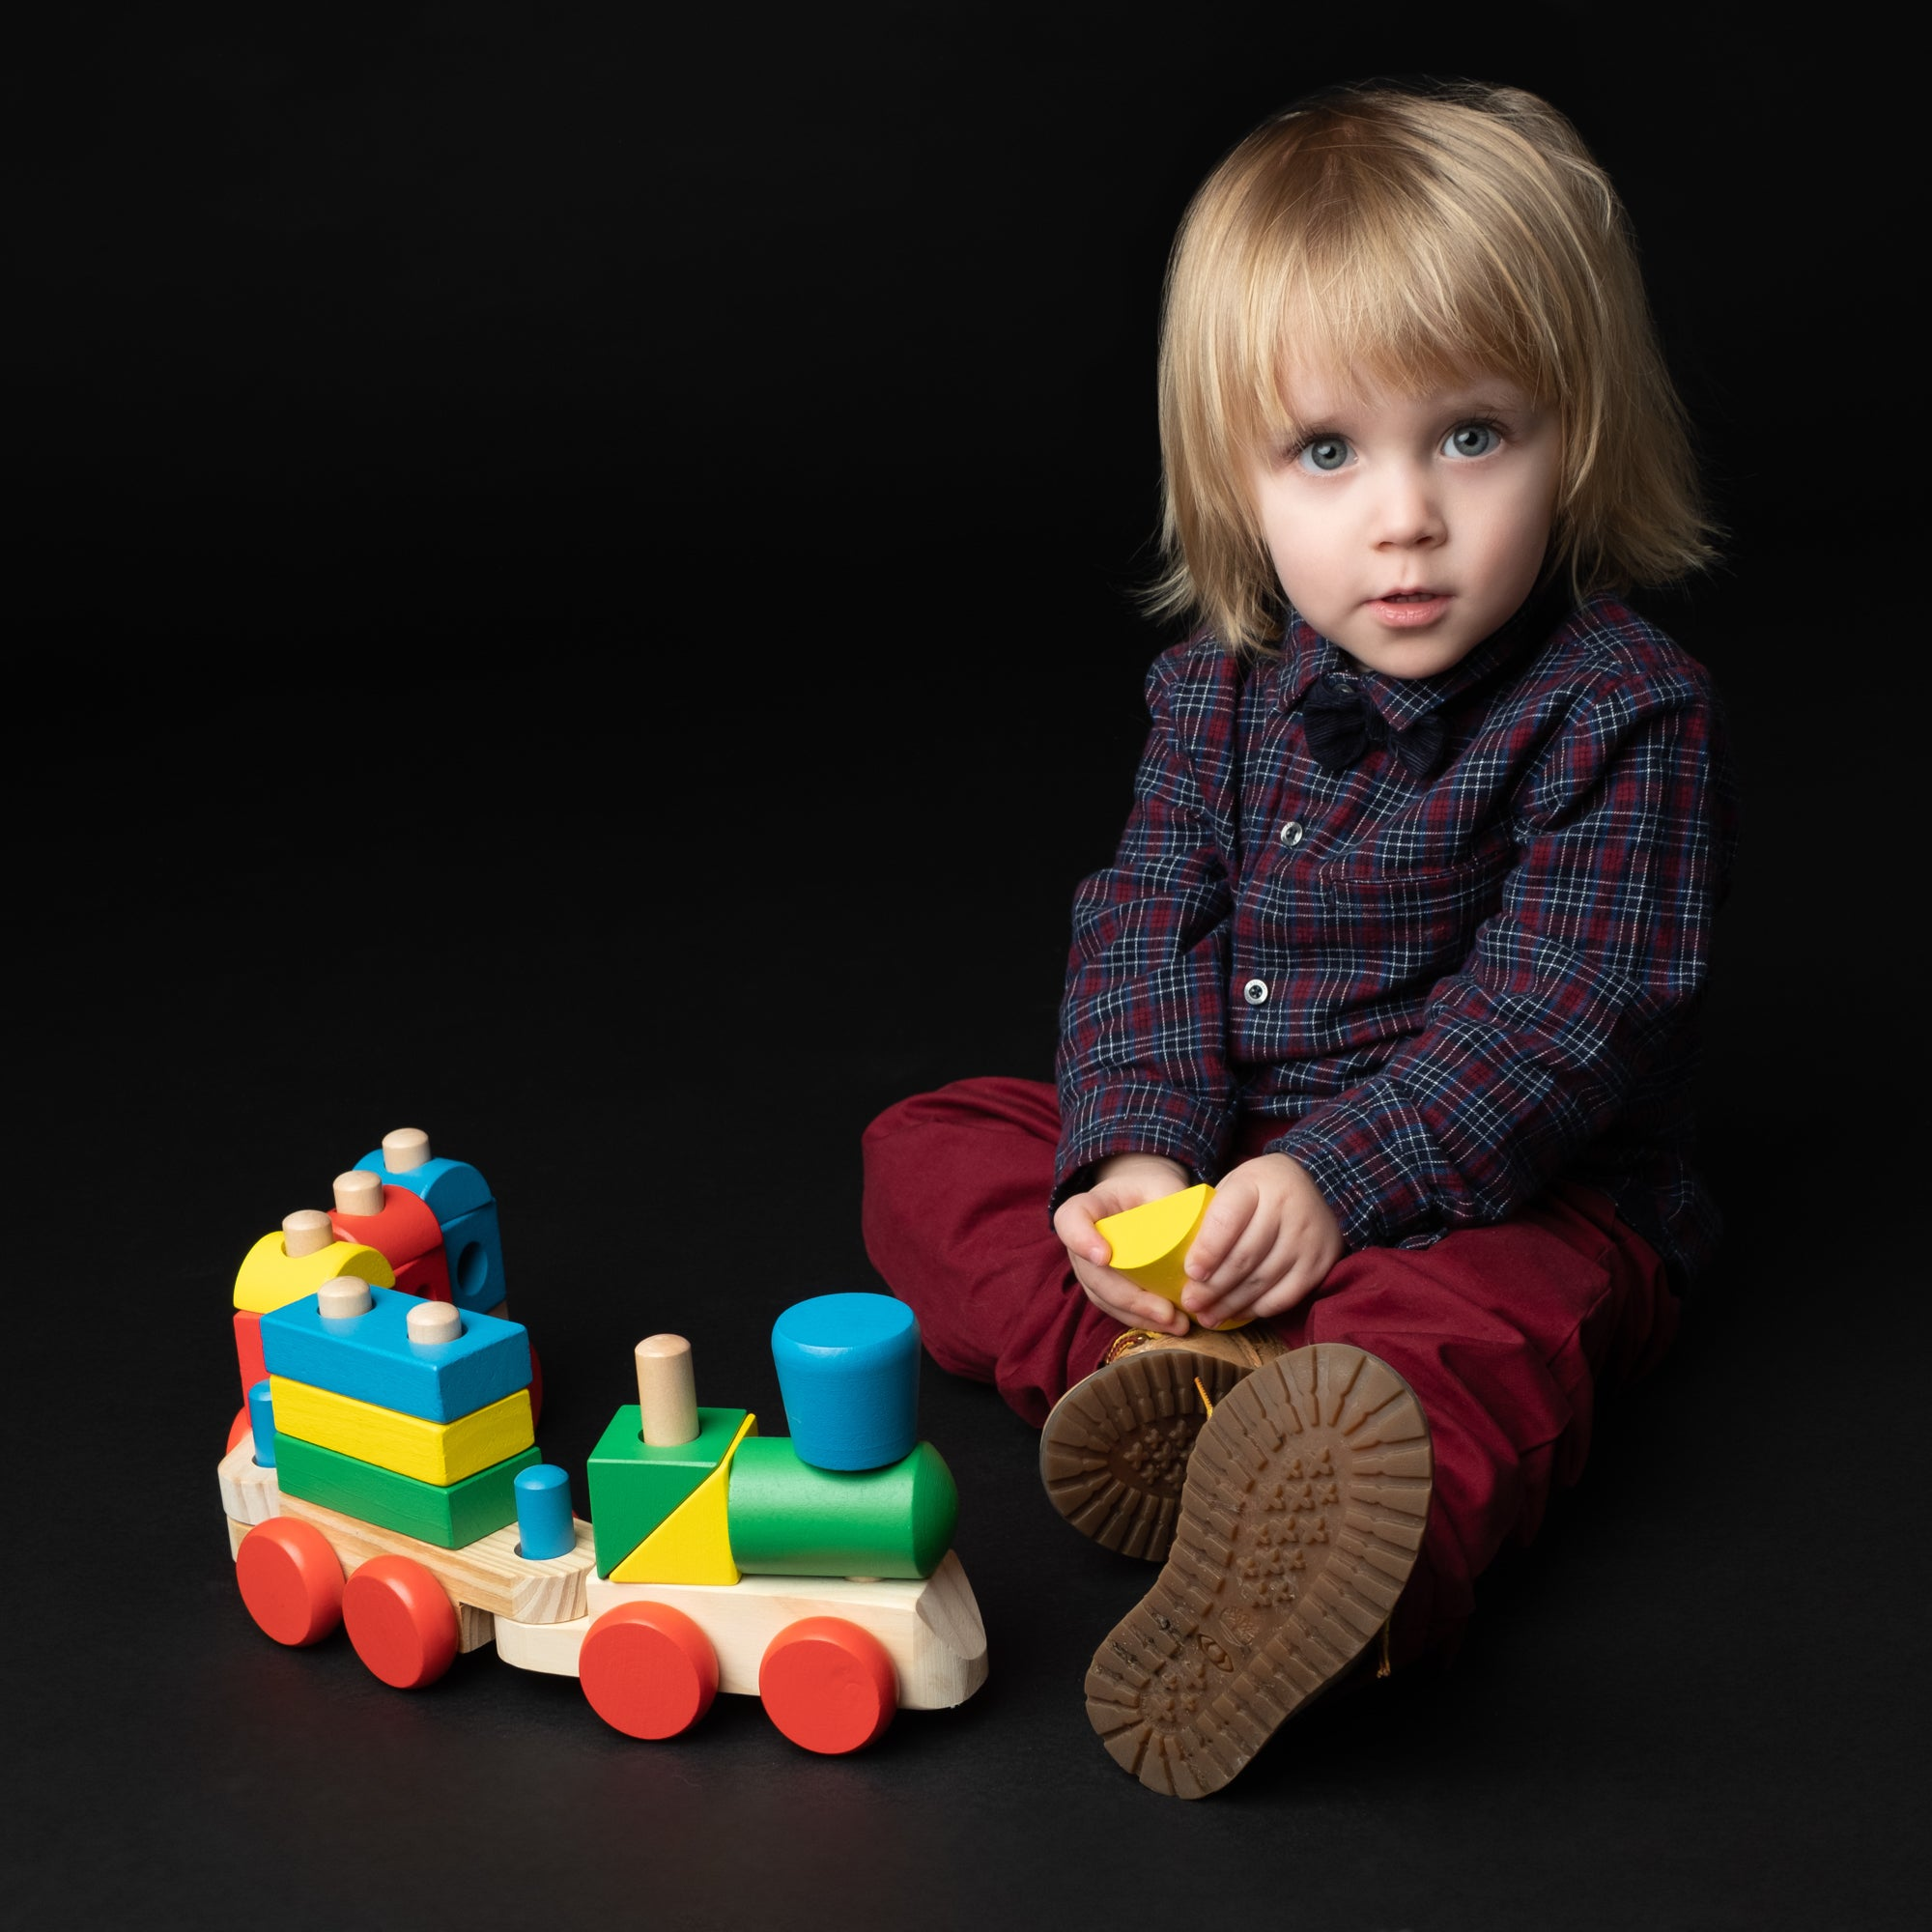 Cute_blonde_haired_Blue_eyed_toddler_in_red_trousers_plays_with_wooden_train_on_the_floor.jpg